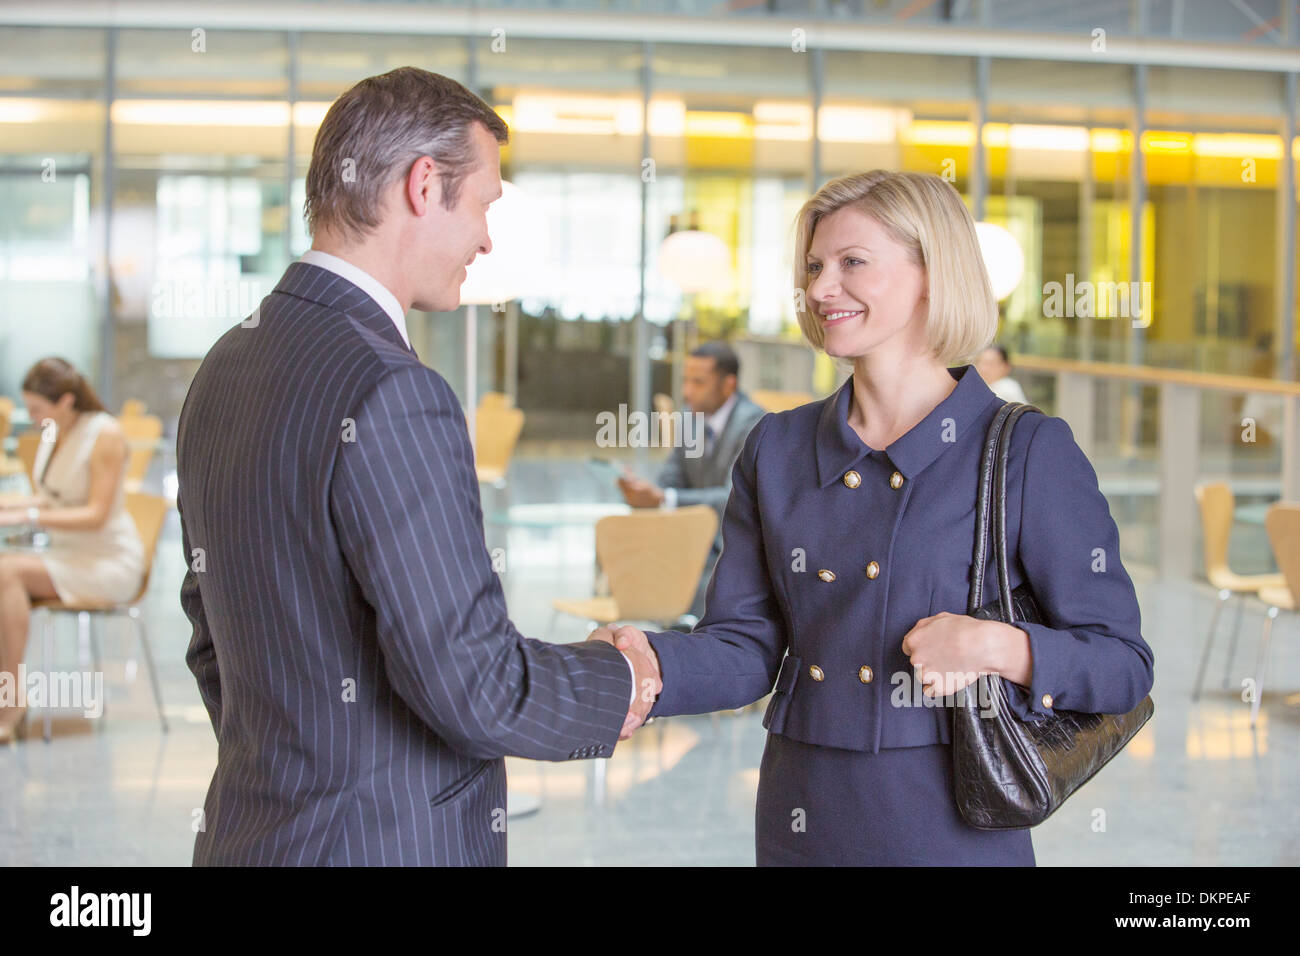 Business people shaking hands in office - Stock Image